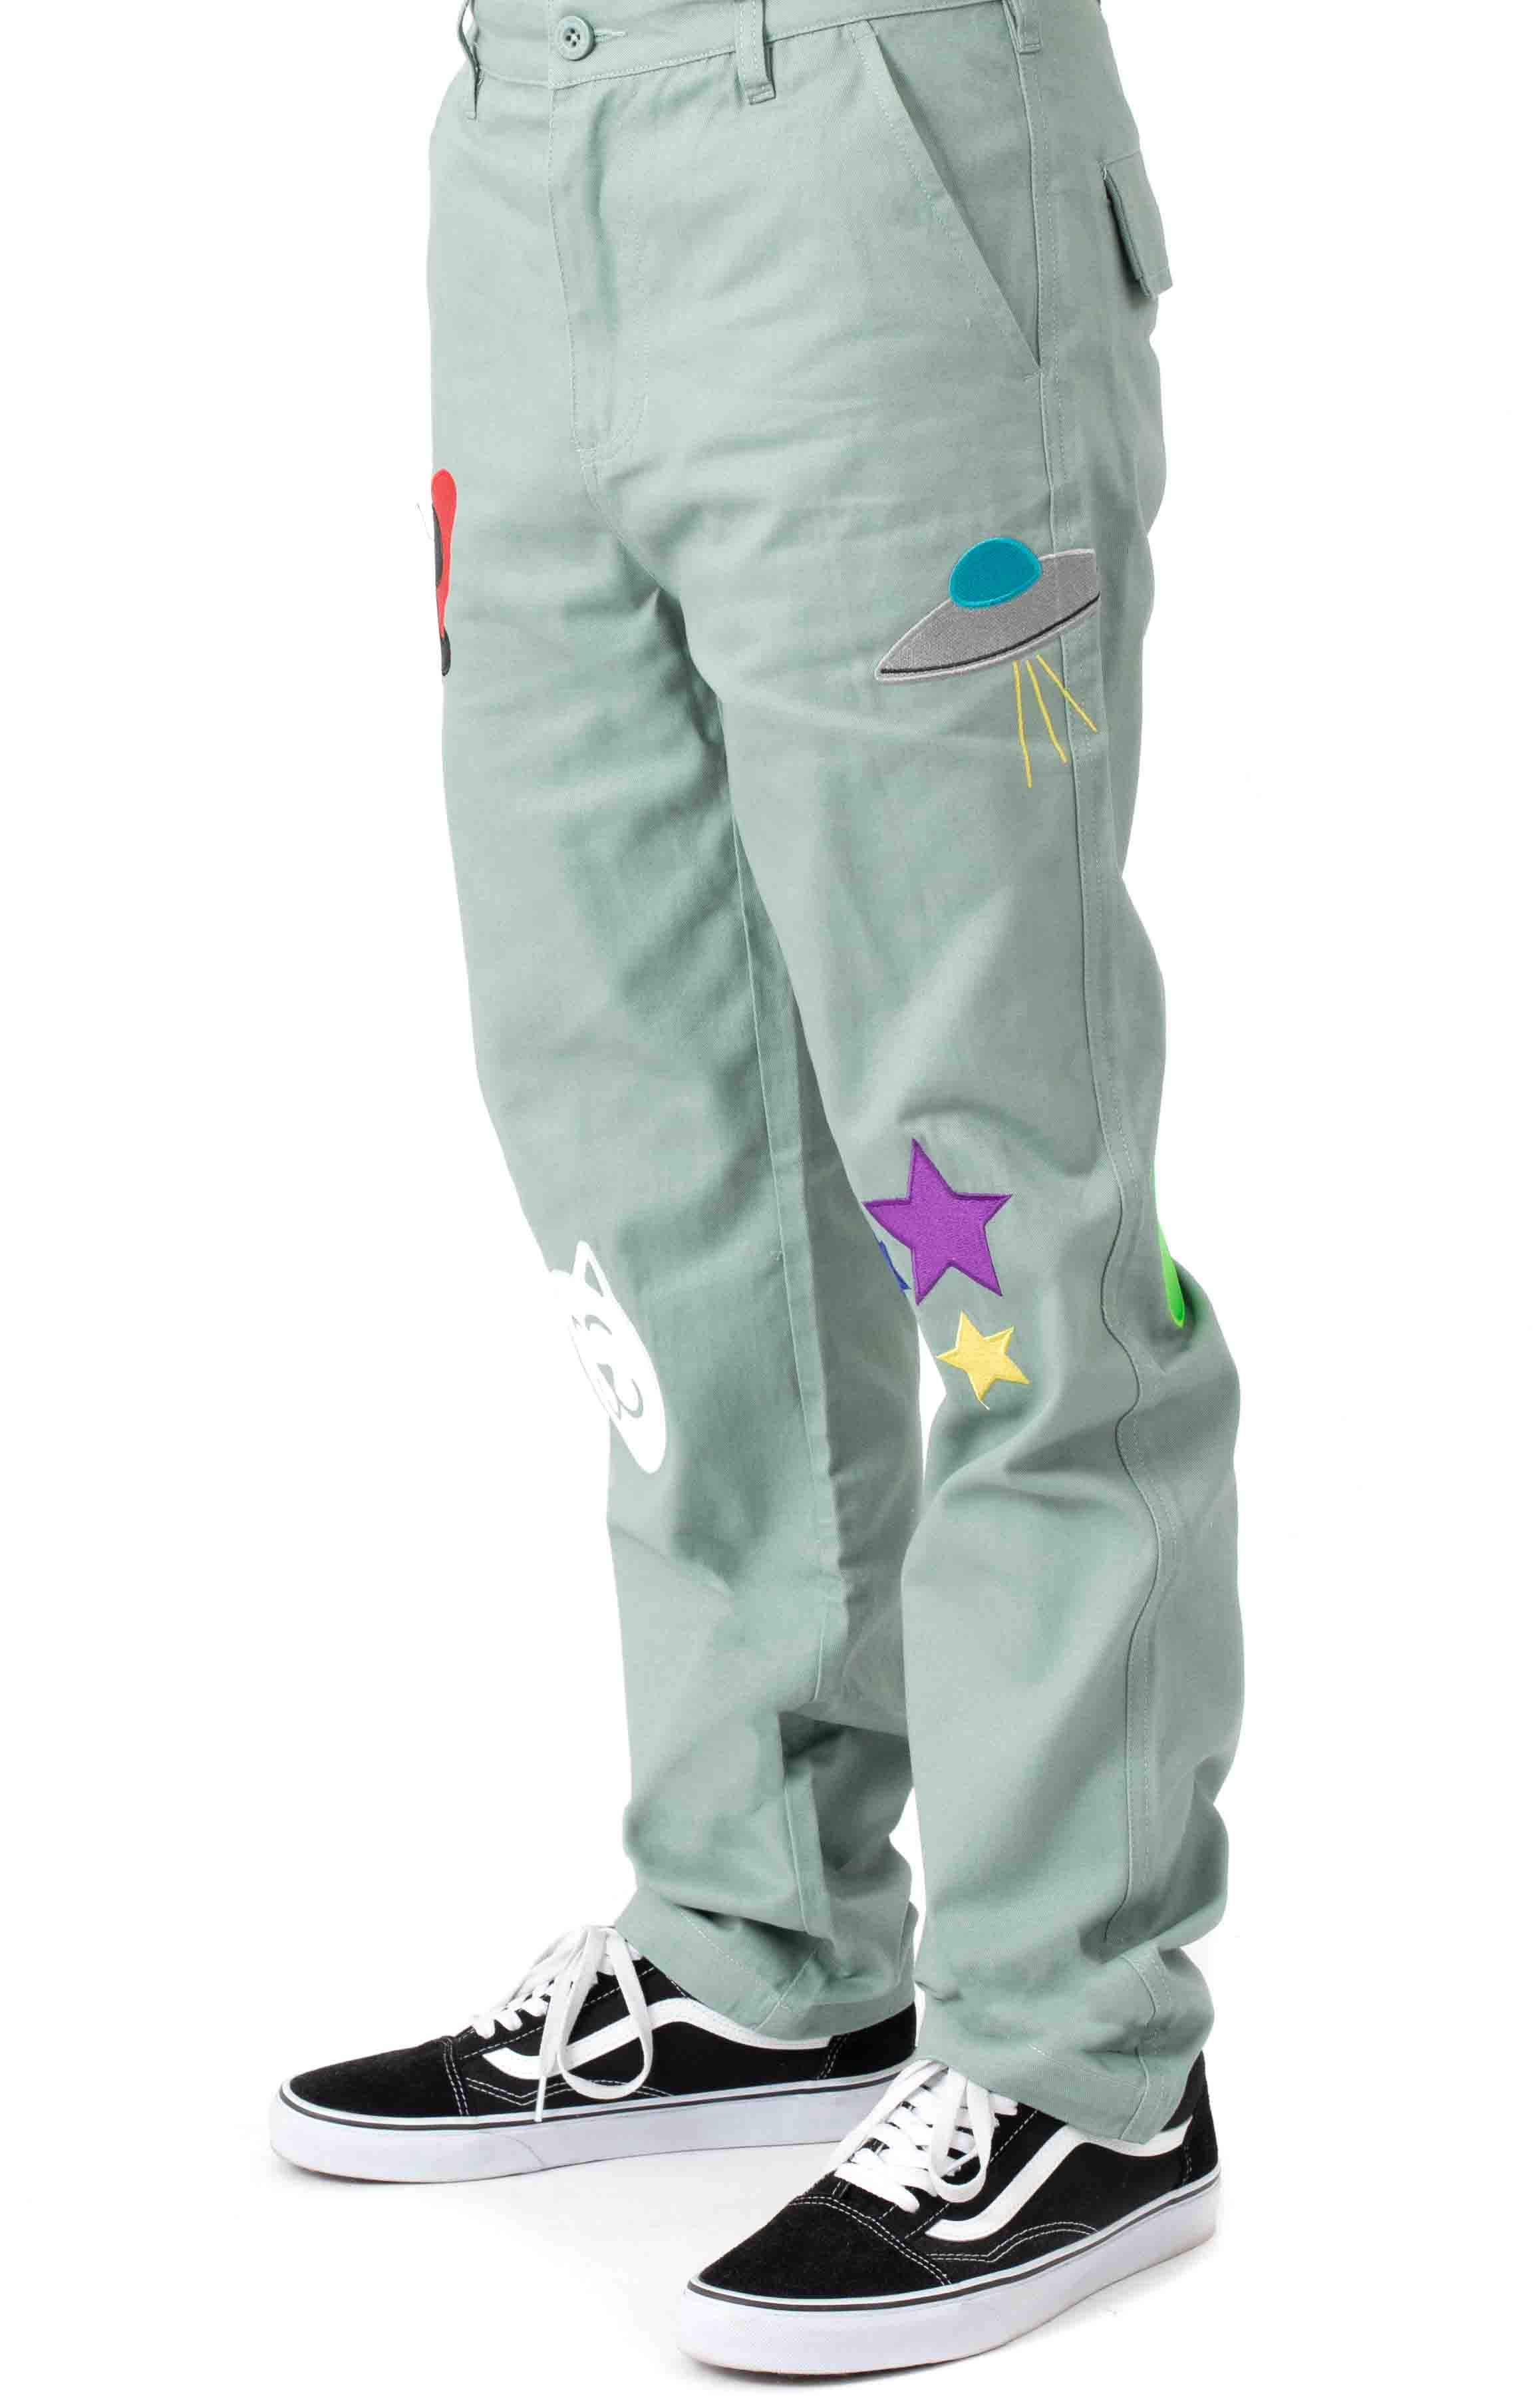 Play Date Cotton Twill Embroidered Pants - Pistacho  2